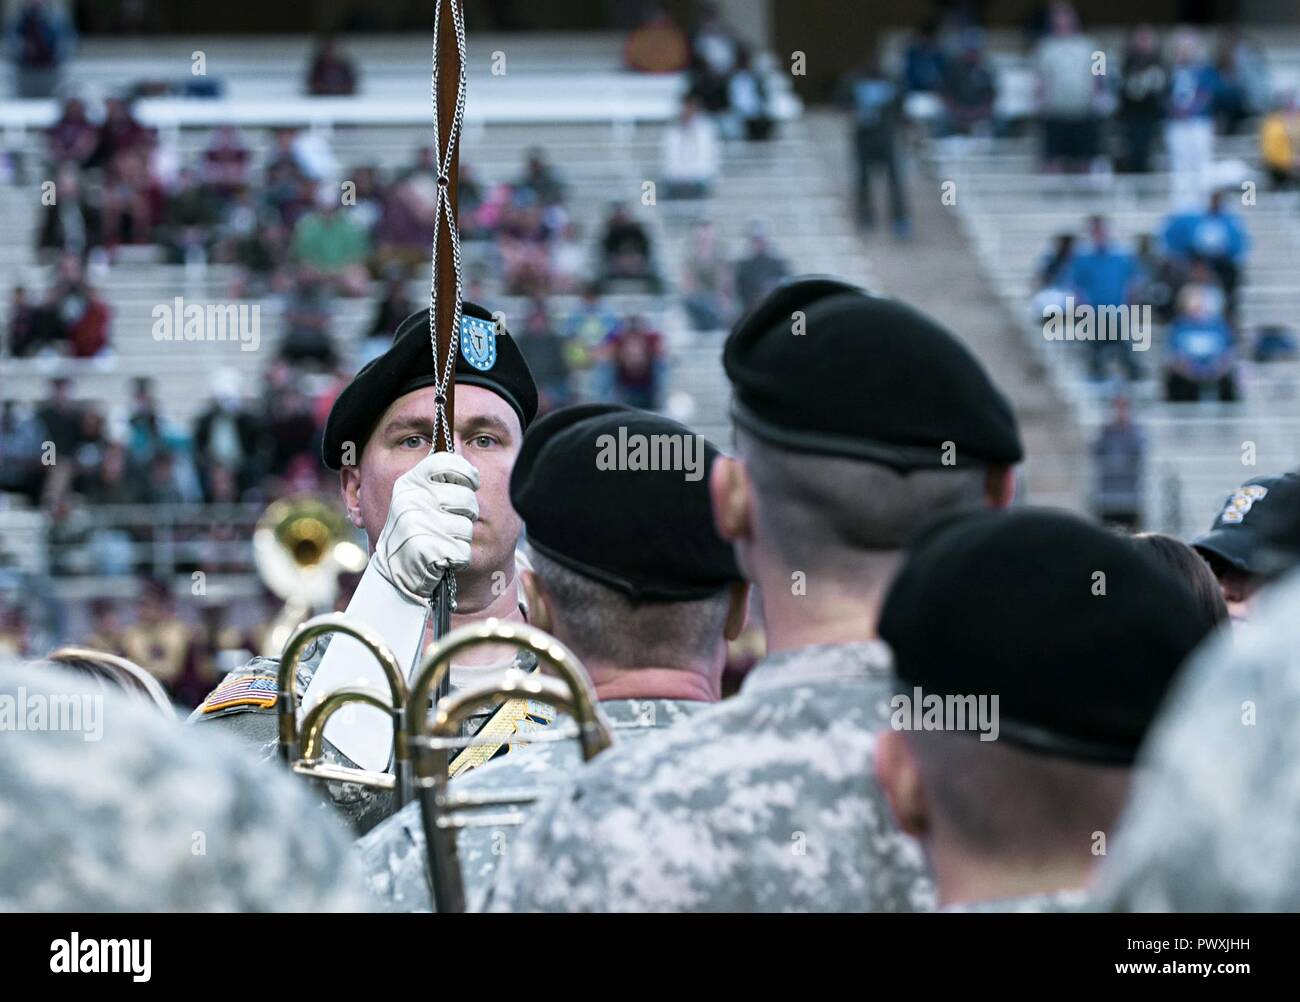 Expo Stands Lightsee : Us military band world war one stock photos & us military band world